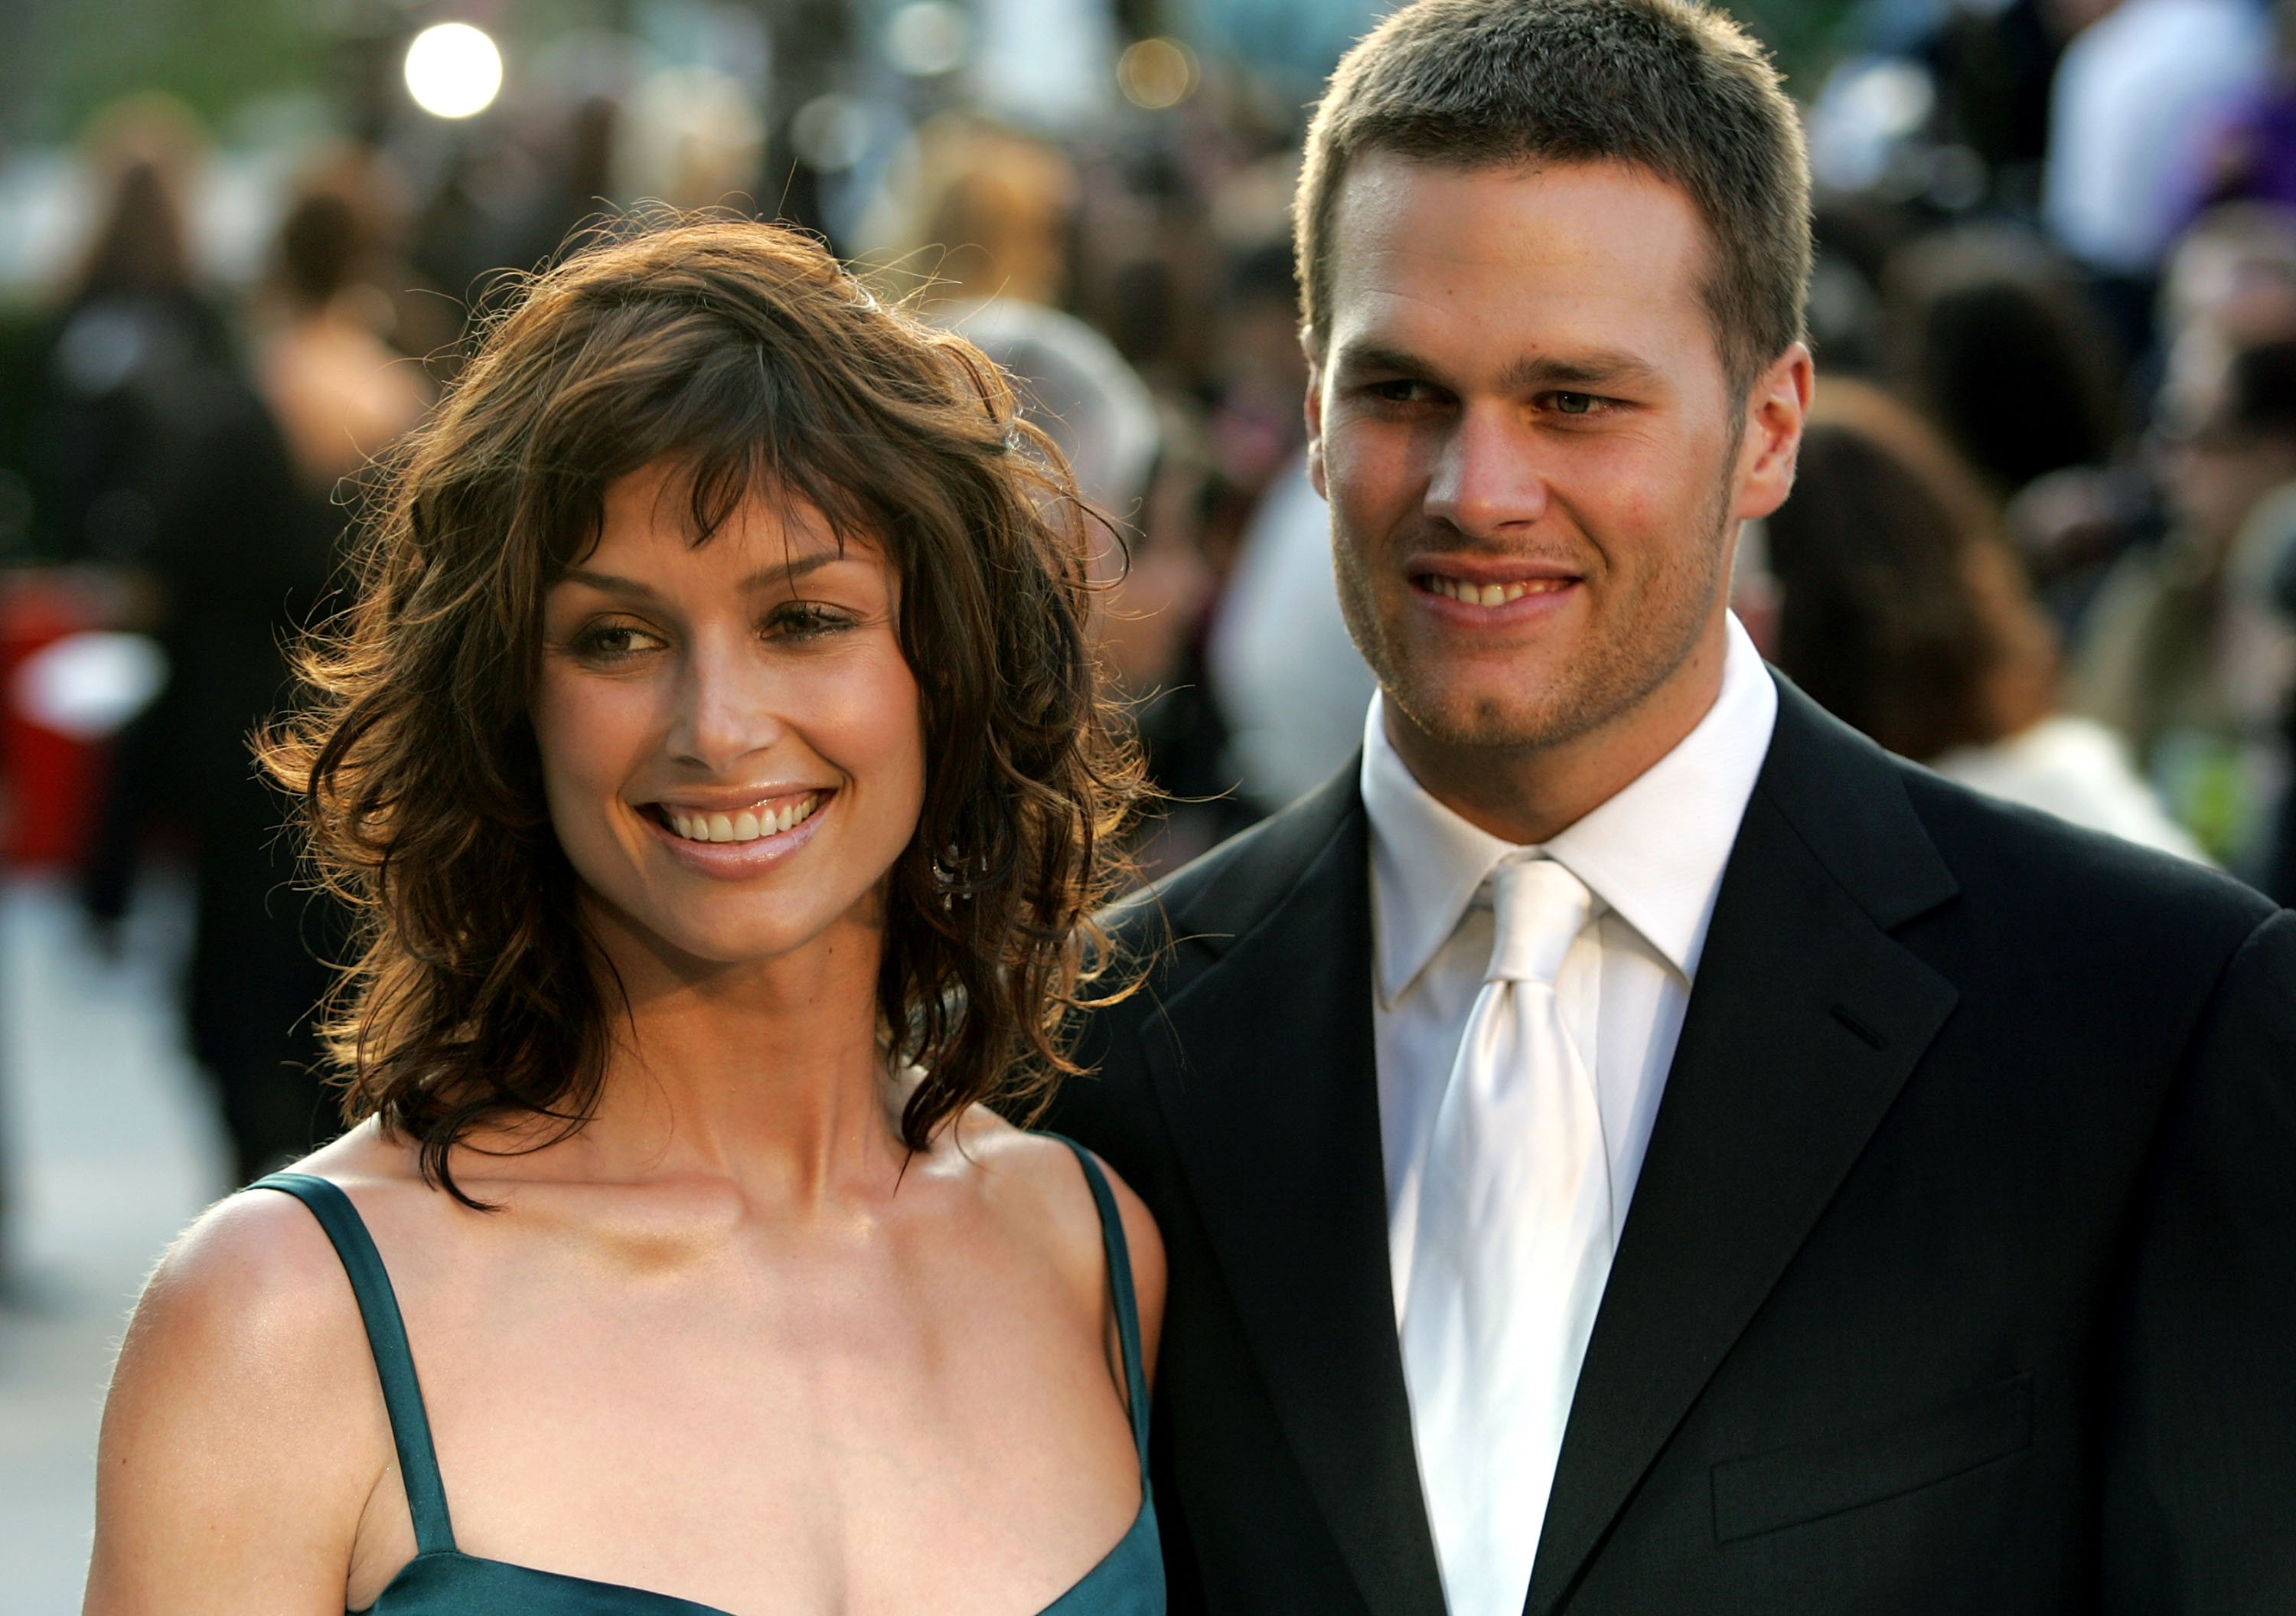 Bridget Moynahan and Tom Brady on February 27, 2005 in West Hollywood, California | Source: Getty Images